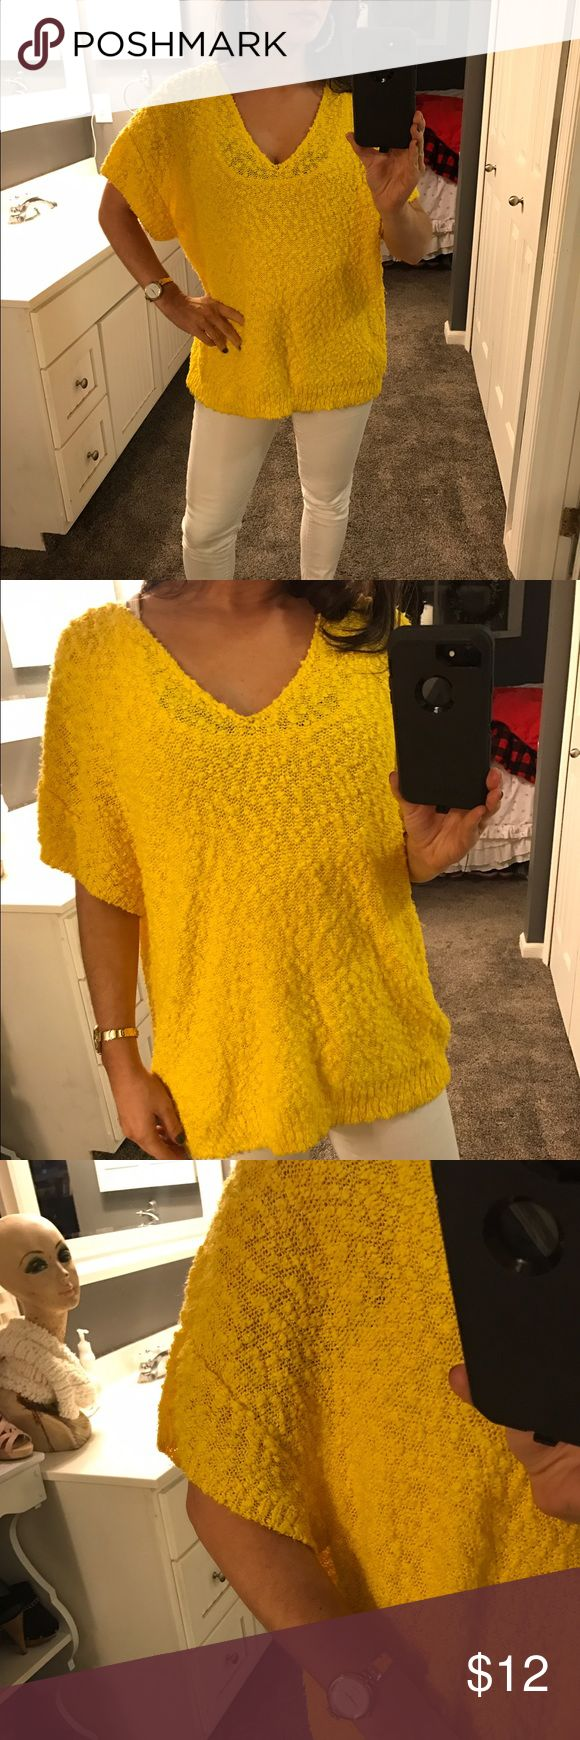 Vintage knit Bright yellow slouchy top Vintage knit sweater.  Bright yellow, v neck, slouchy.  Bright and cheery!  Perfect for spring!  No size tag but fits like a small if you want the baggy look. Vintage Sweaters